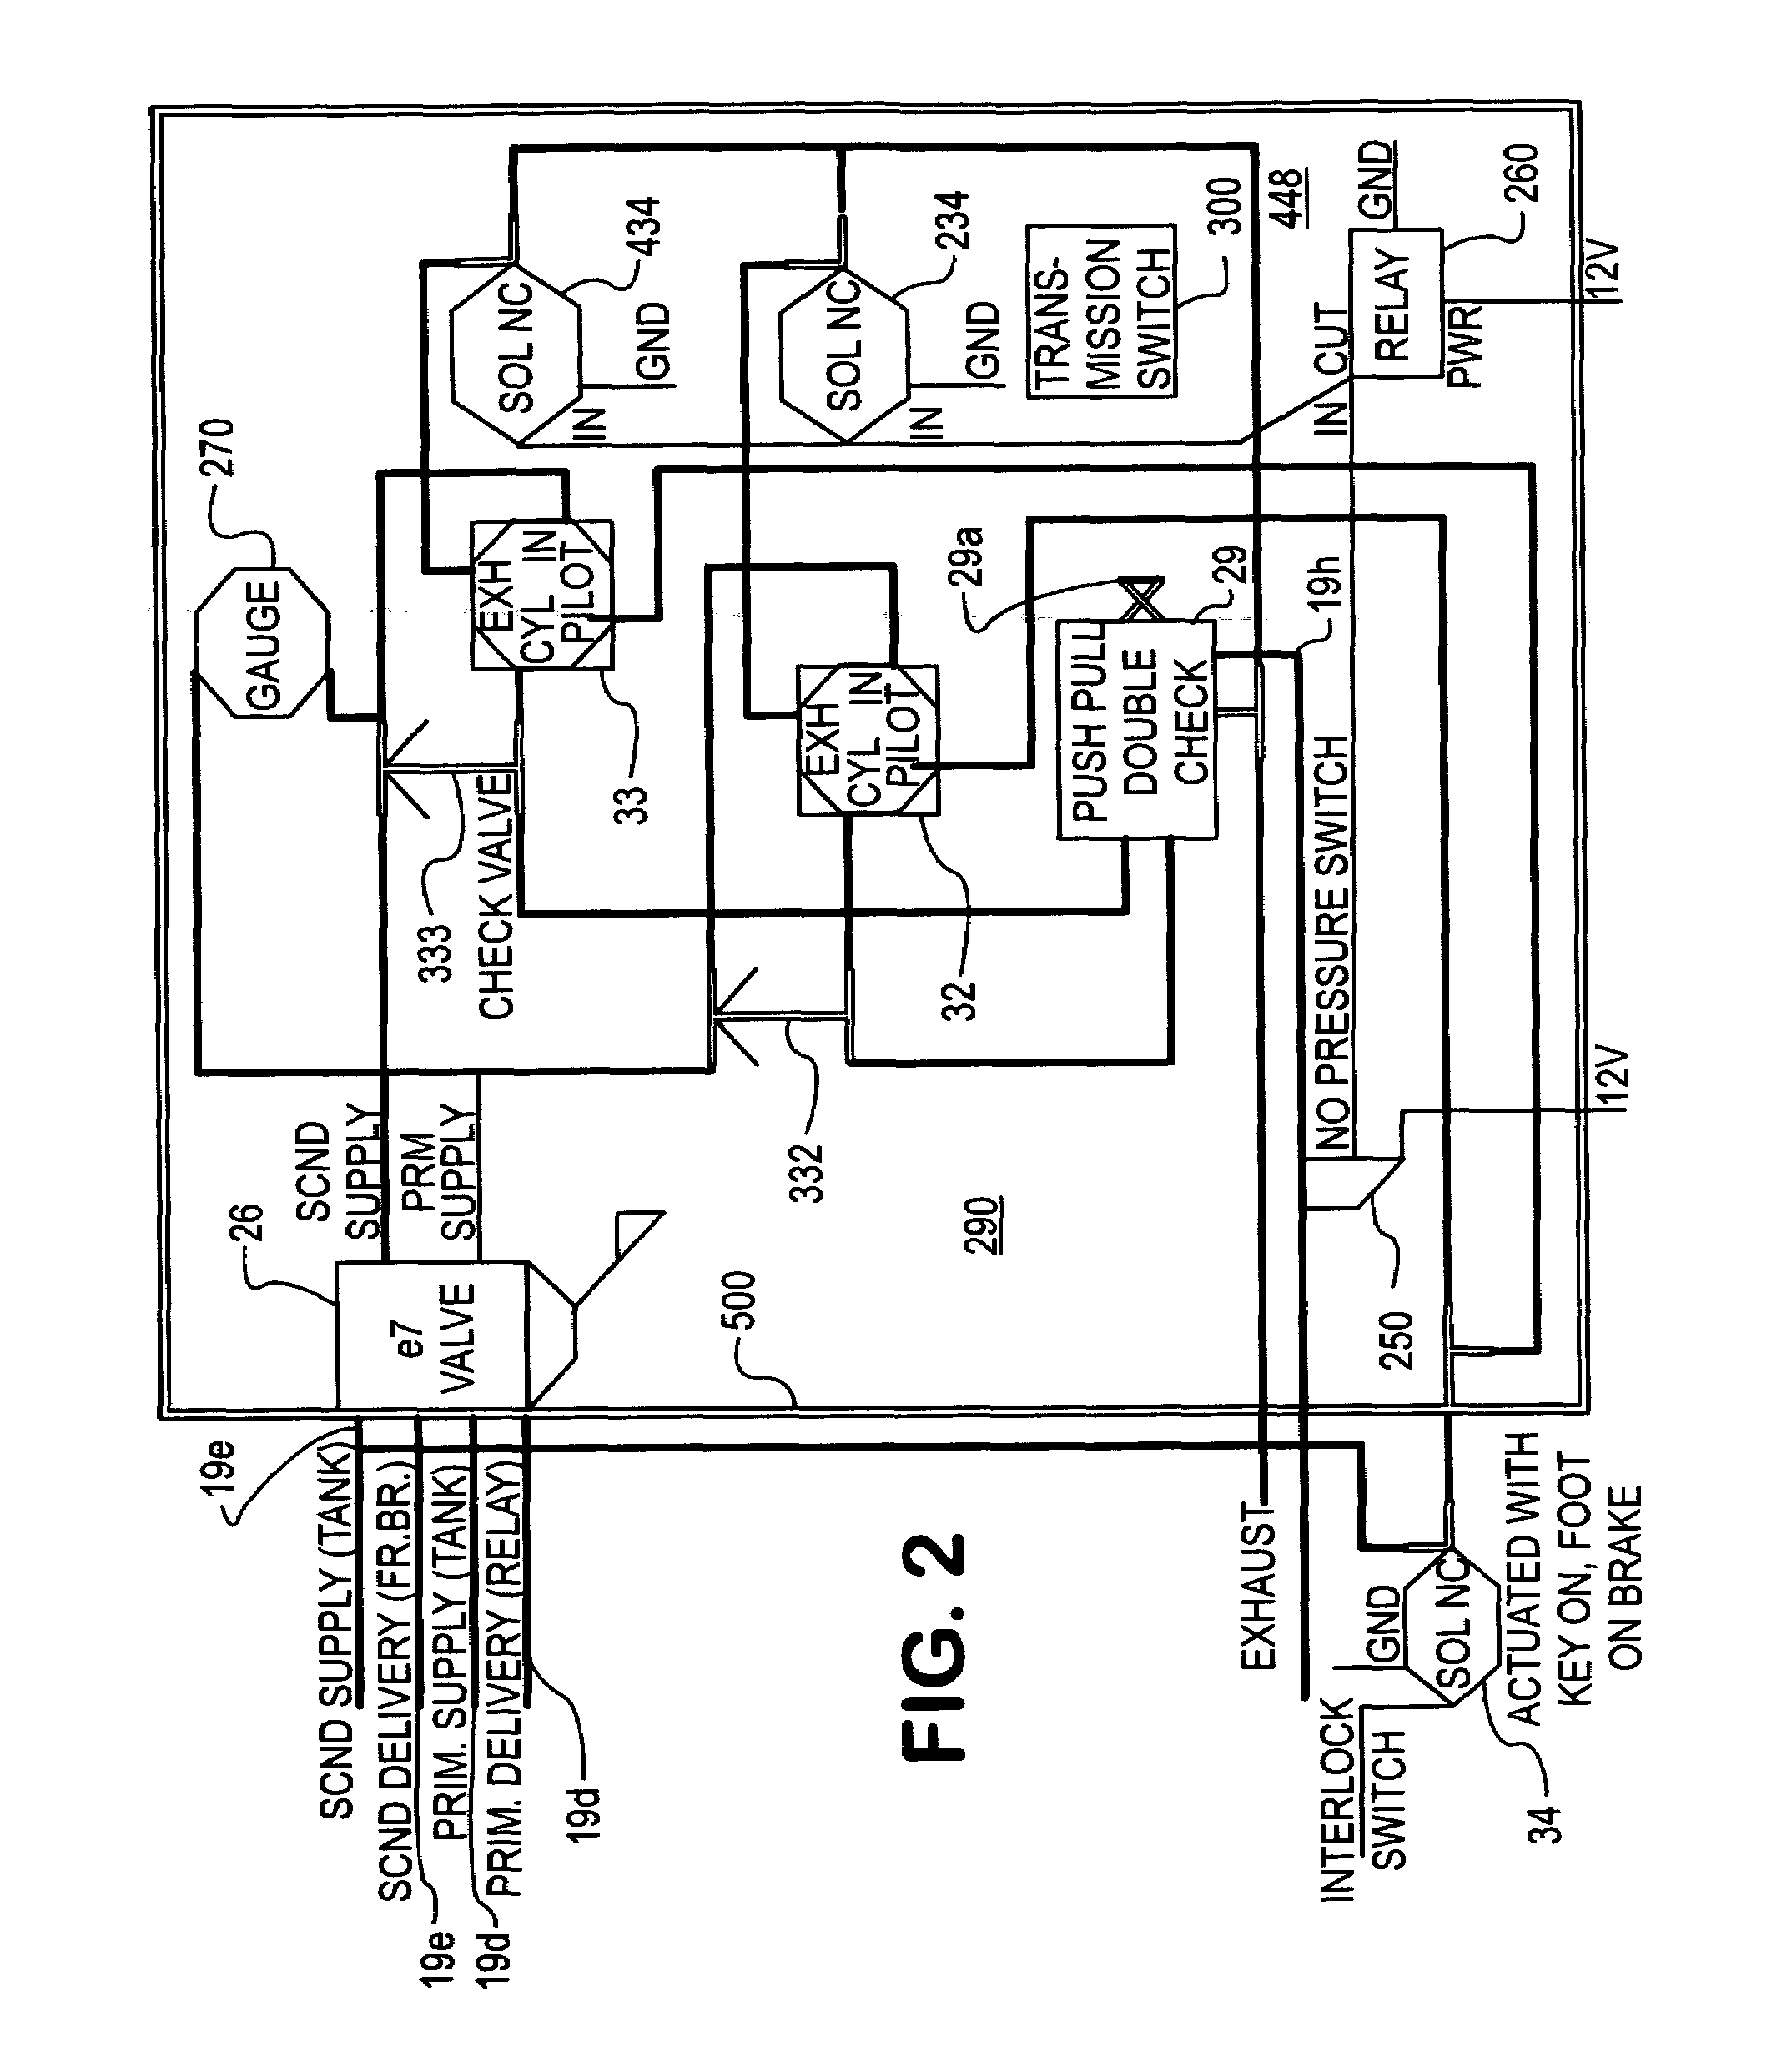 US6630650 likewise Stove Switch Wiring Diagrams also 441282463461031778 furthermore Wiring Diagram Electric Hob besides 3 Prong 220 Wiring Outlet Diagram. on wiring diagram for induction hob